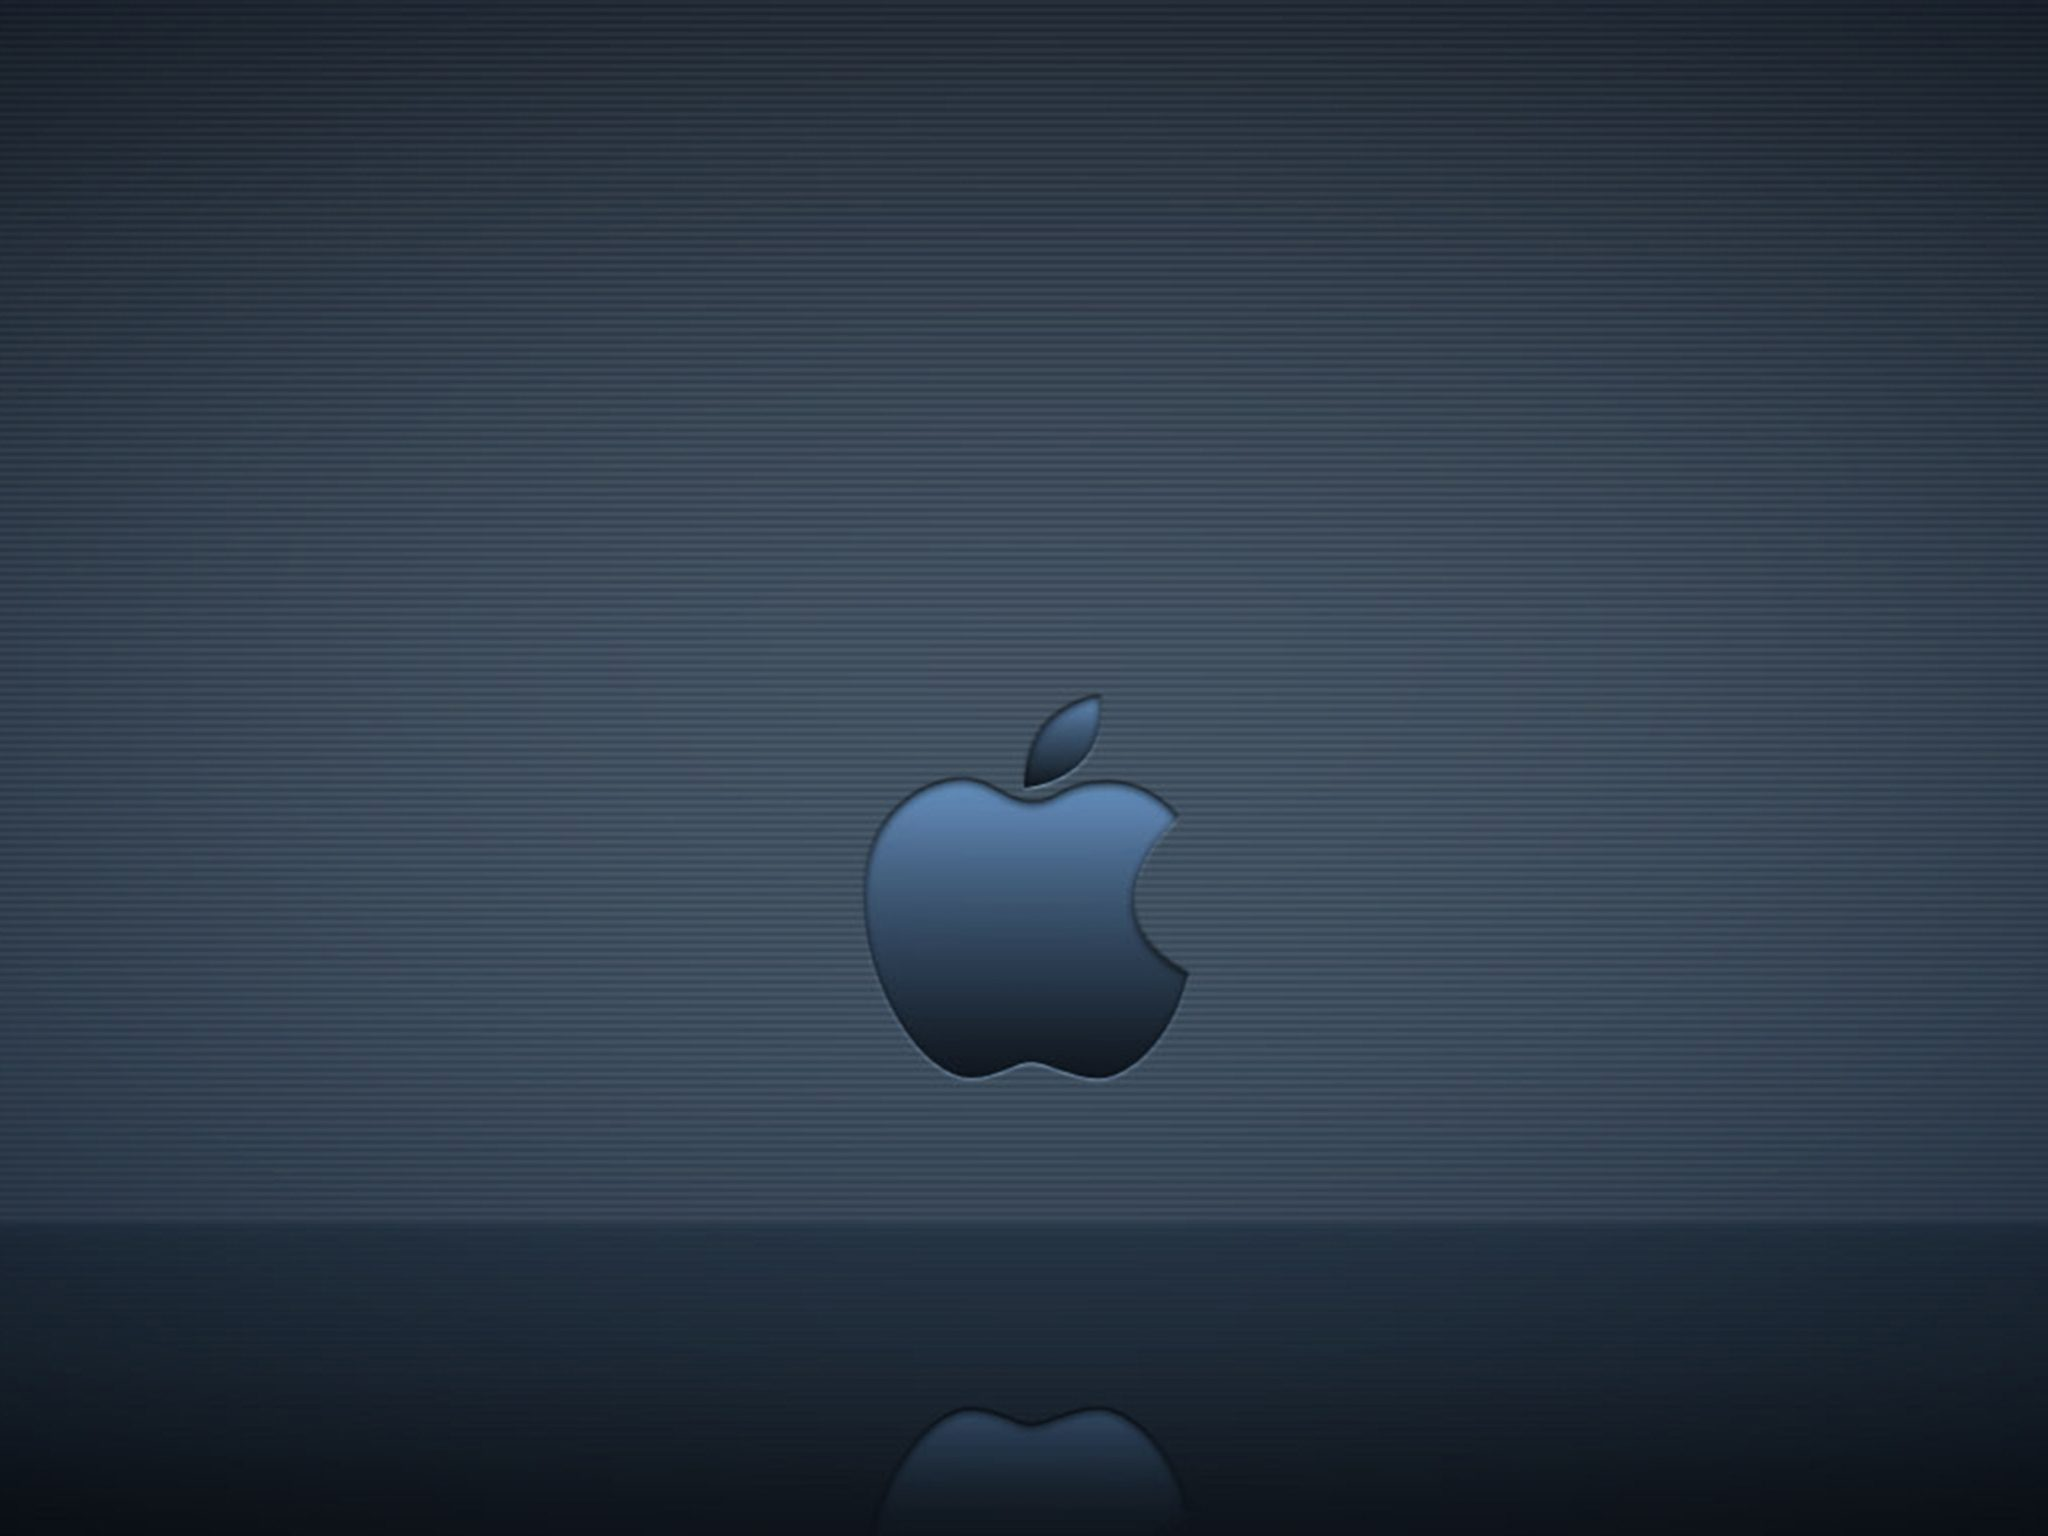 2048x1536 wallpaper Apple Logo Reflection Ipad Wallpaper 2048x1536 pixels resolution